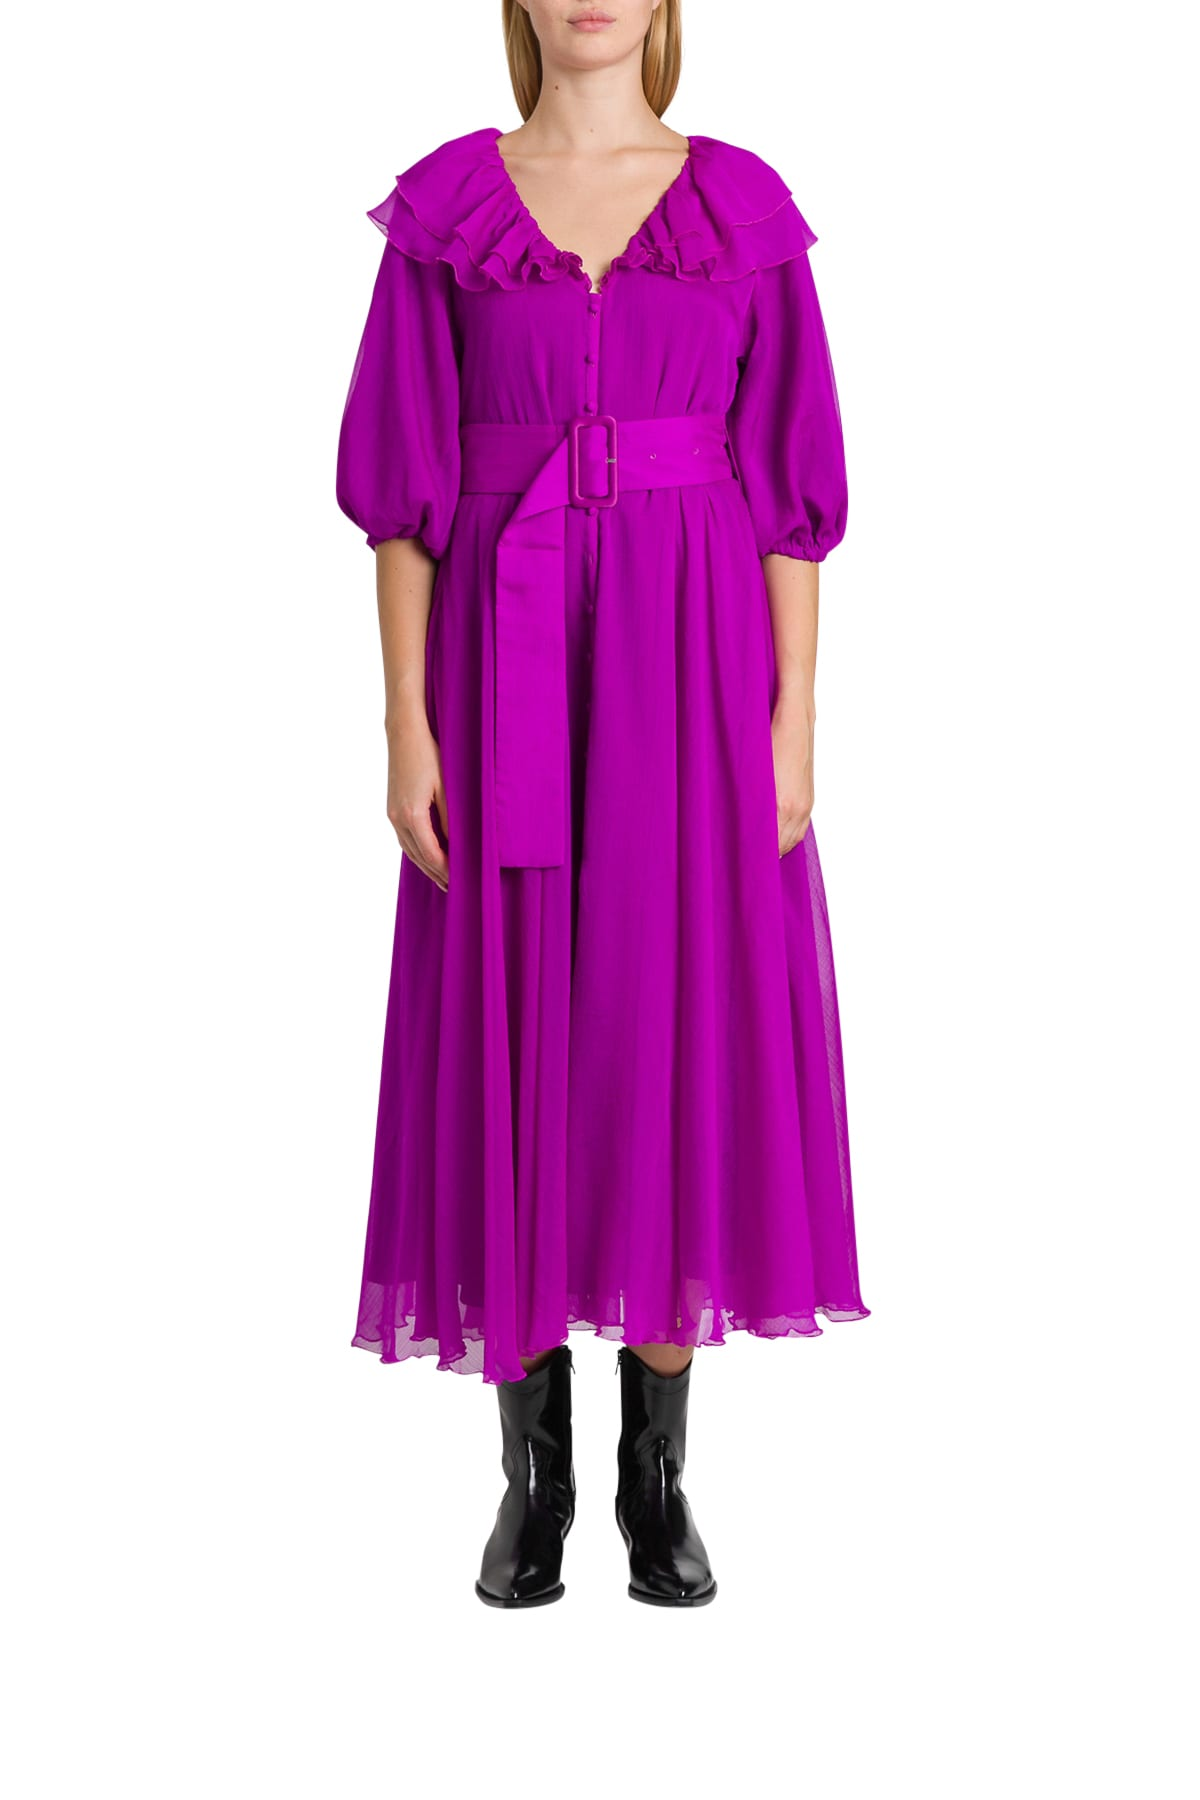 Rotate by Birger Christensen Number 47 Dress